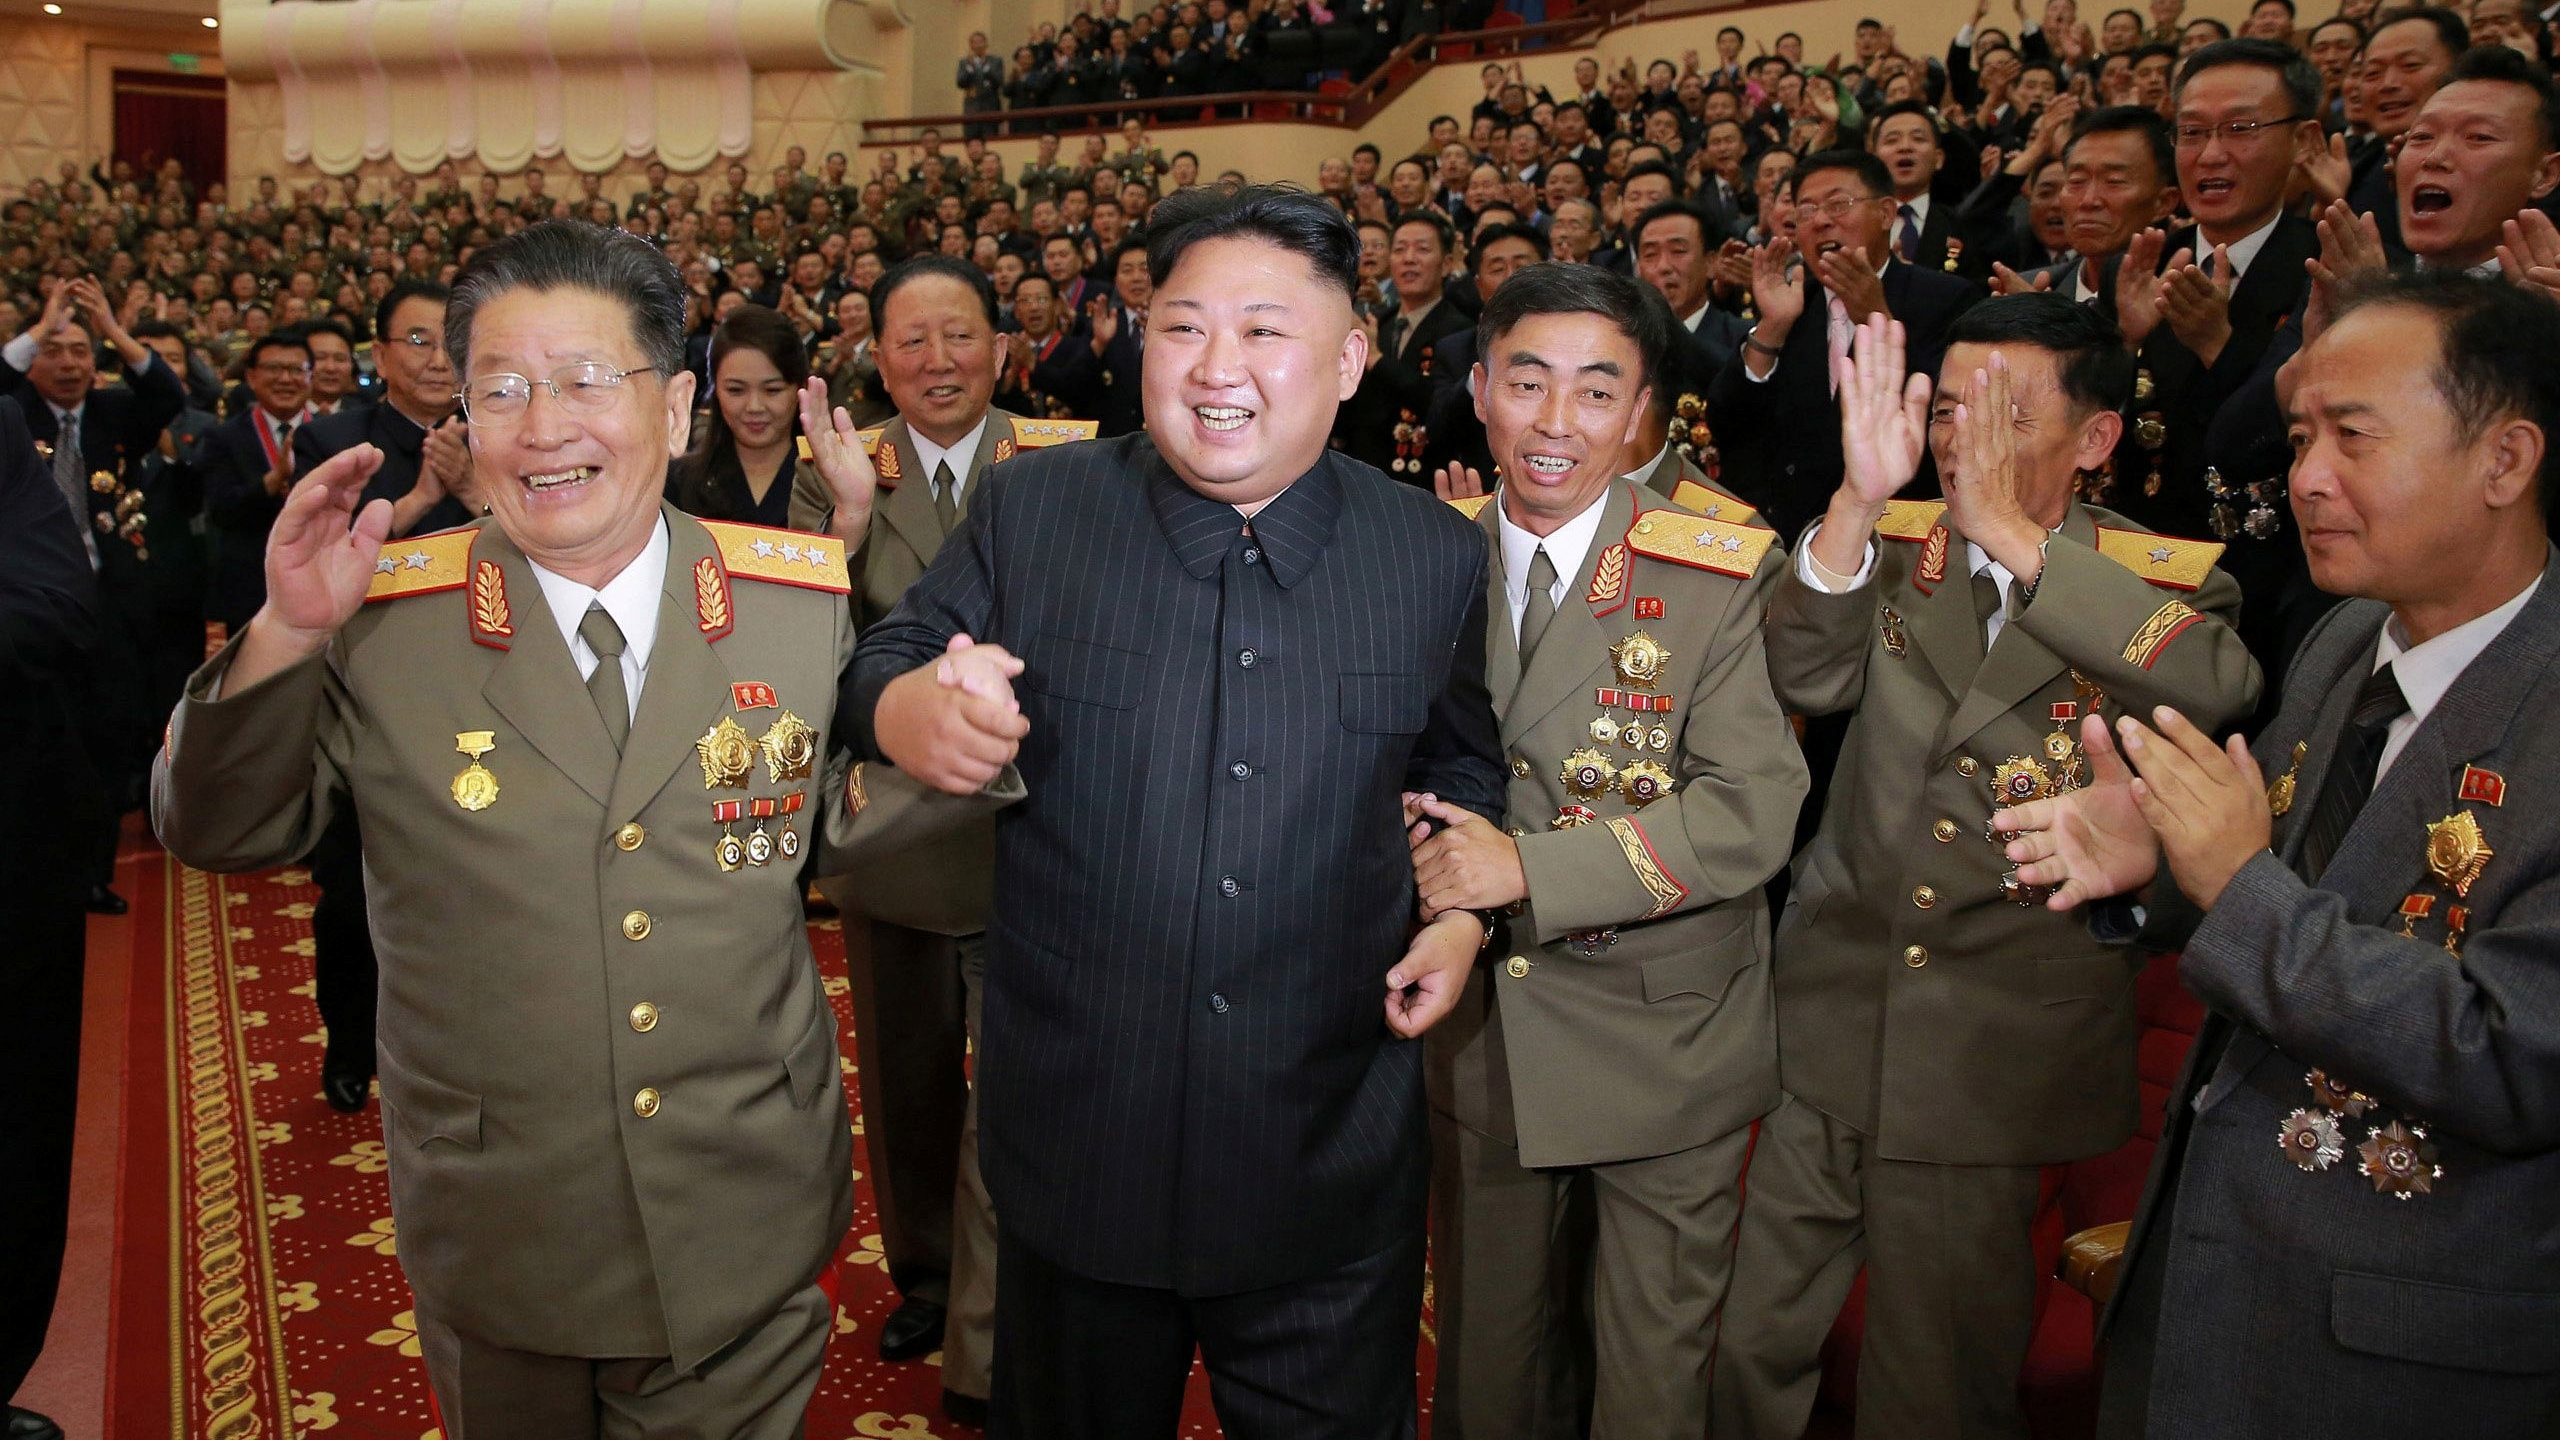 North Korean leader Kim Jong Un reacts during a celebration for nuclear scientists and engineers who contributed to a hydrogen bomb test, in this undated photo released by North Korea's Korean Central News Agency (KCNA) in Pyongyang on September 10, 2017.